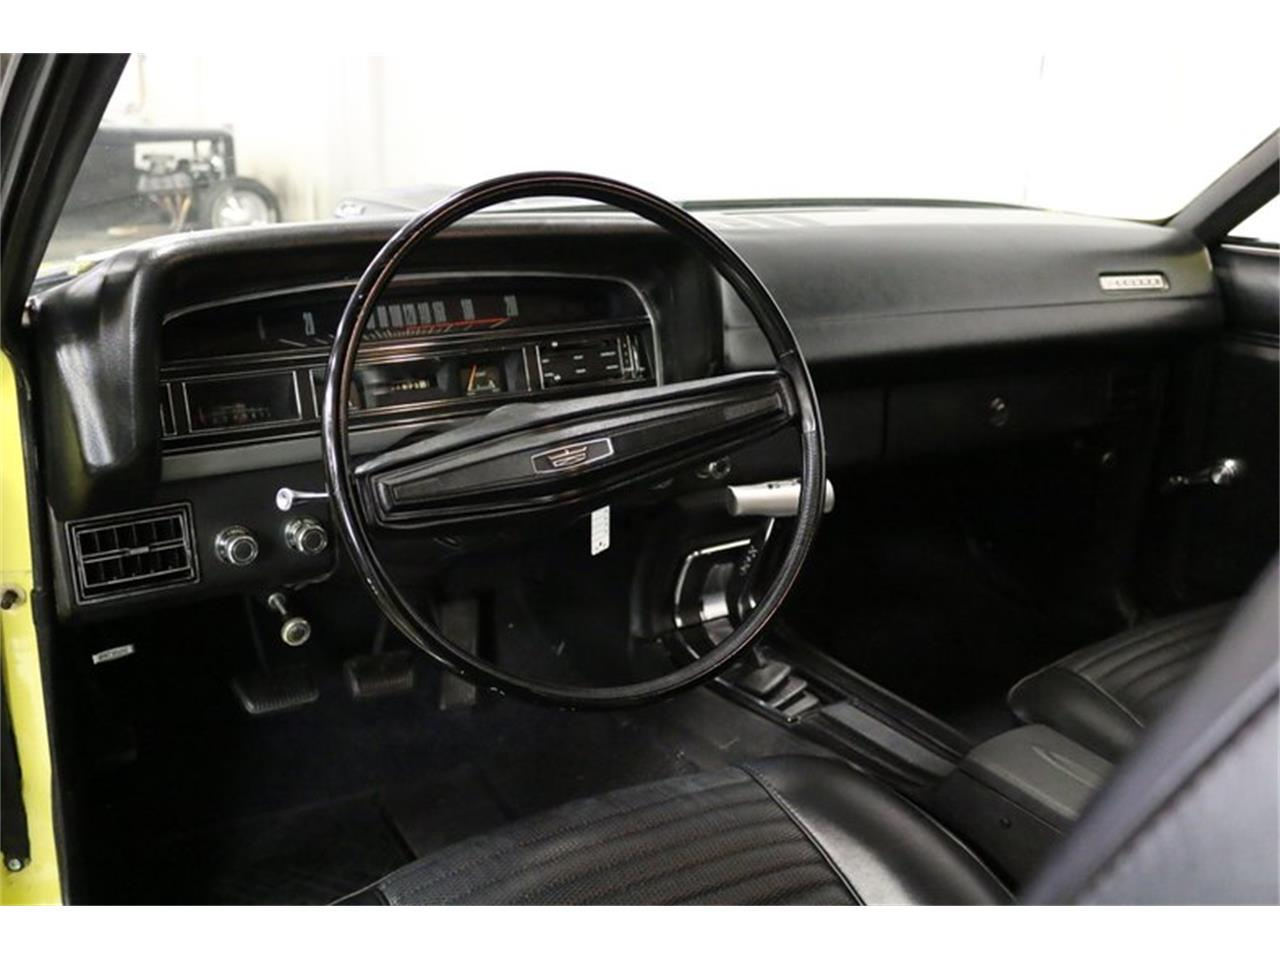 Large Picture of 1970 Torino located in Texas Offered by Streetside Classics - Dallas / Fort Worth - NNFR